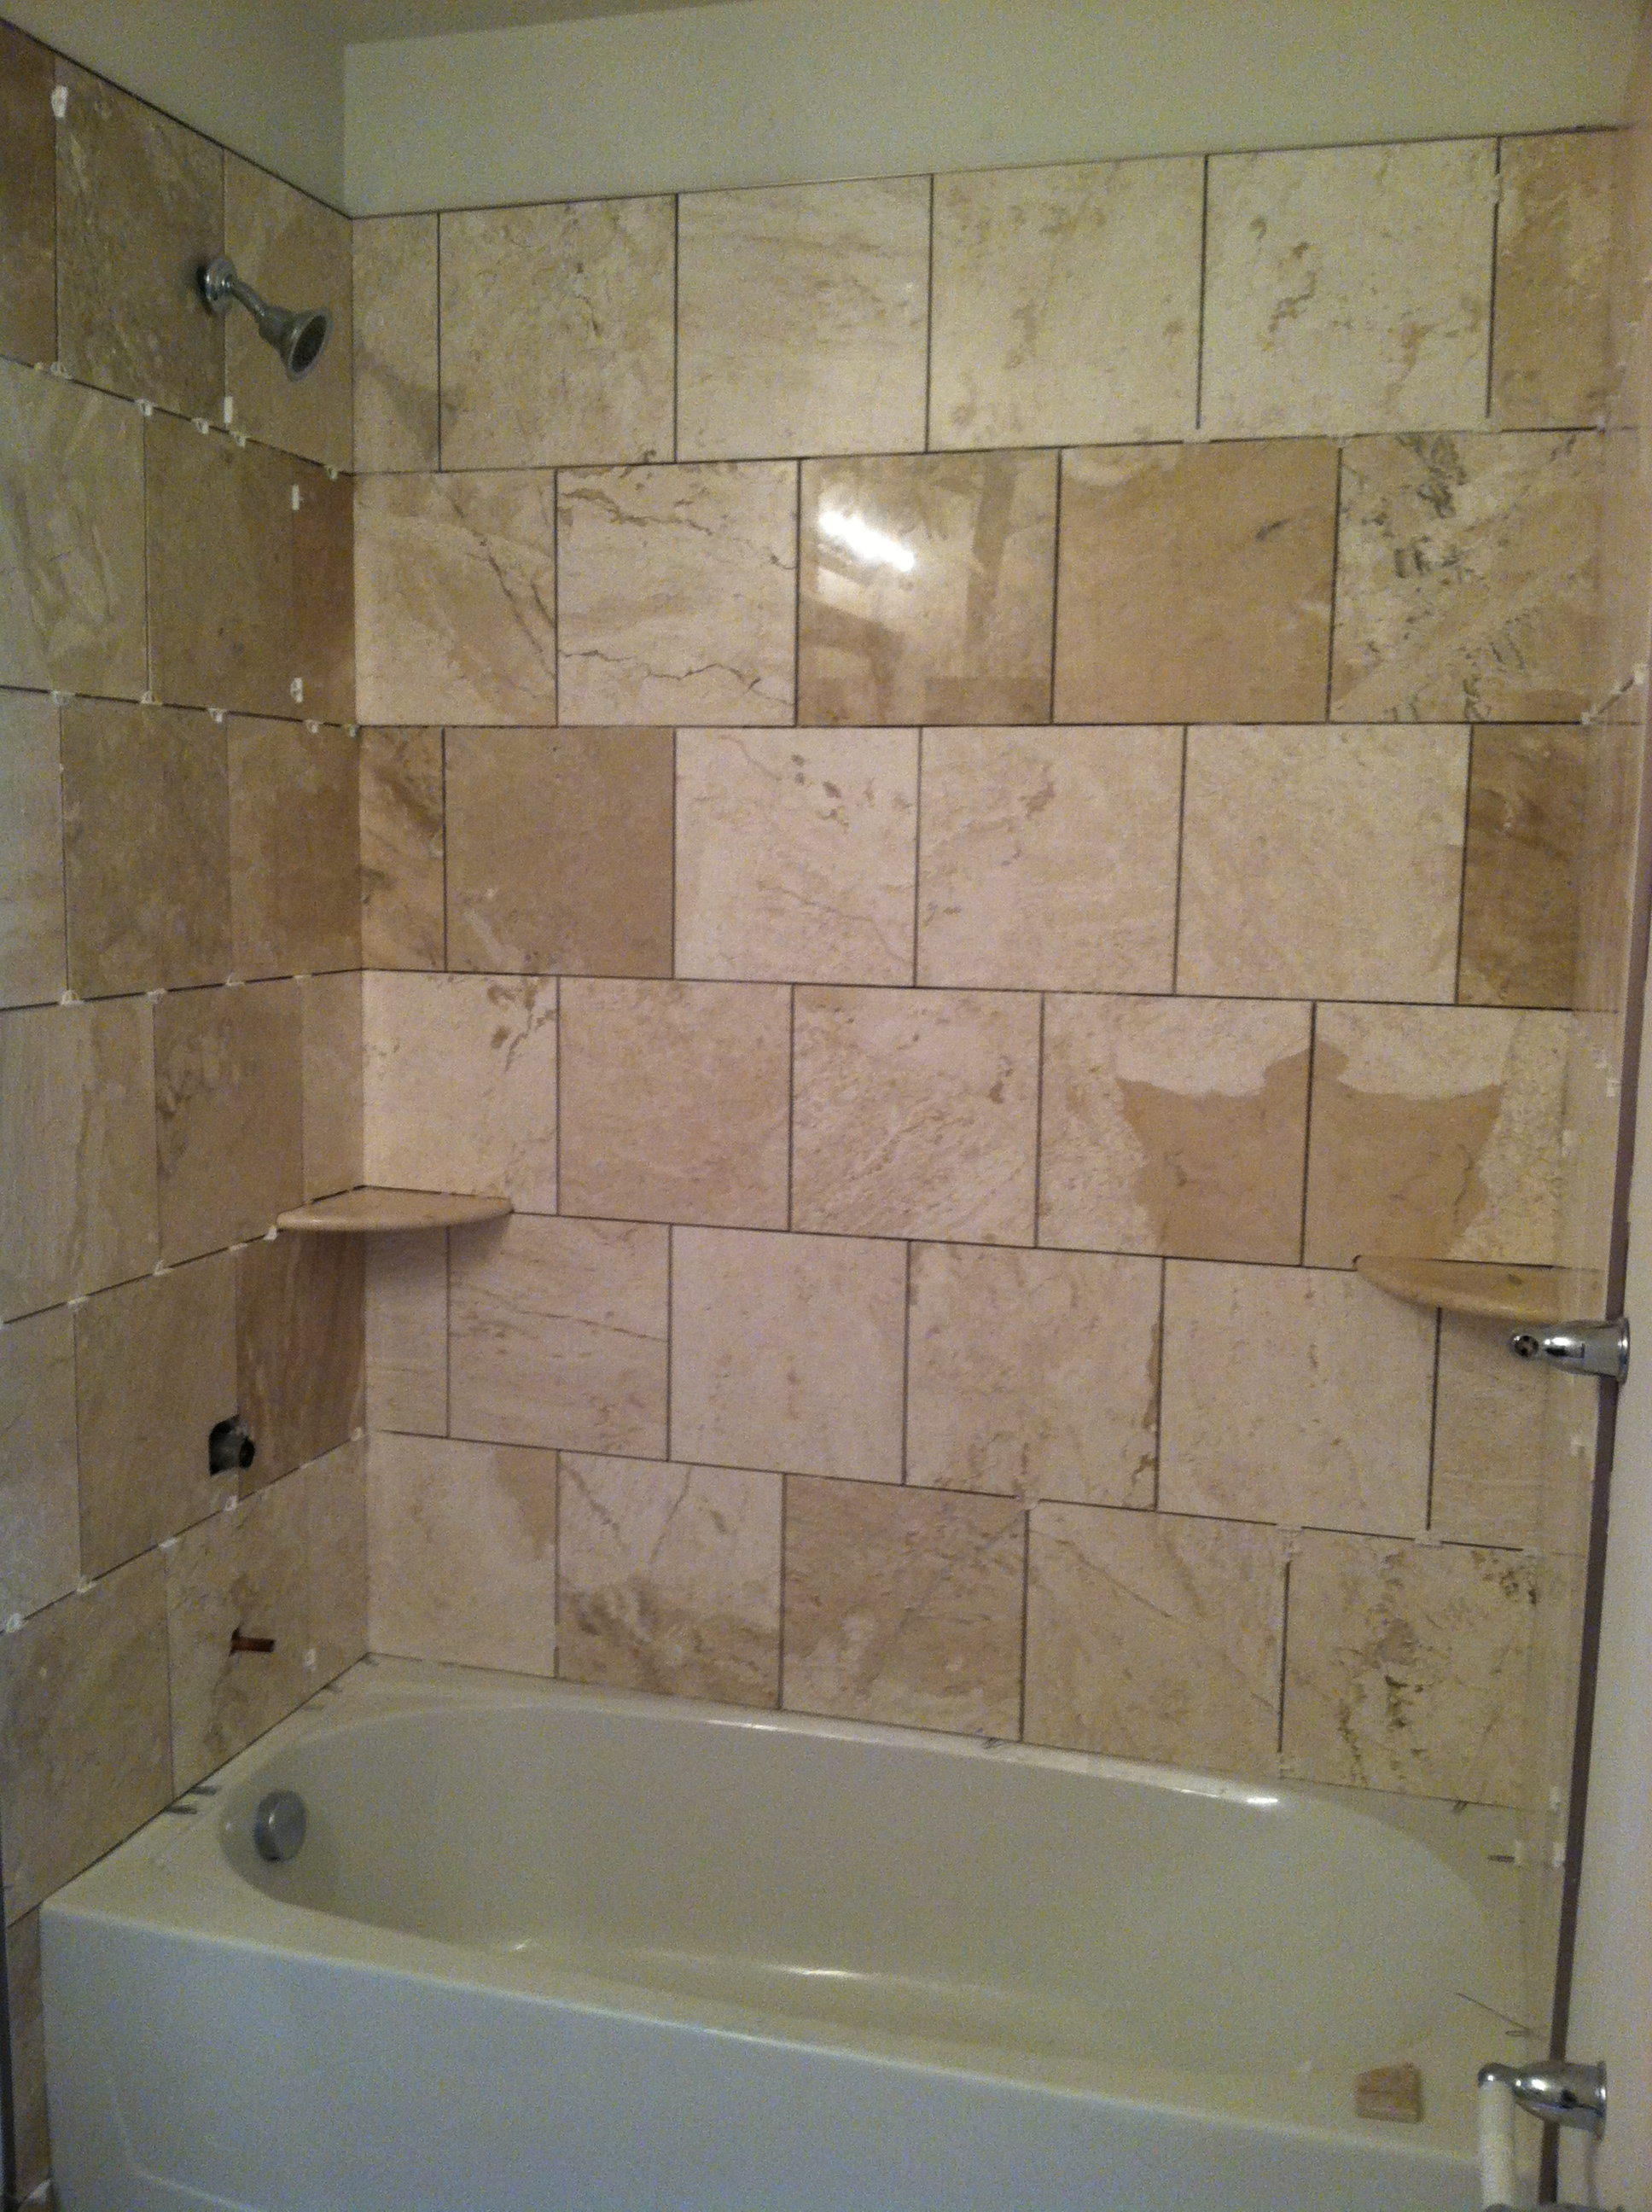 Ceramic tile showers ewdinteriors photo gallery of the ceramic tile showers doublecrazyfo Image collections